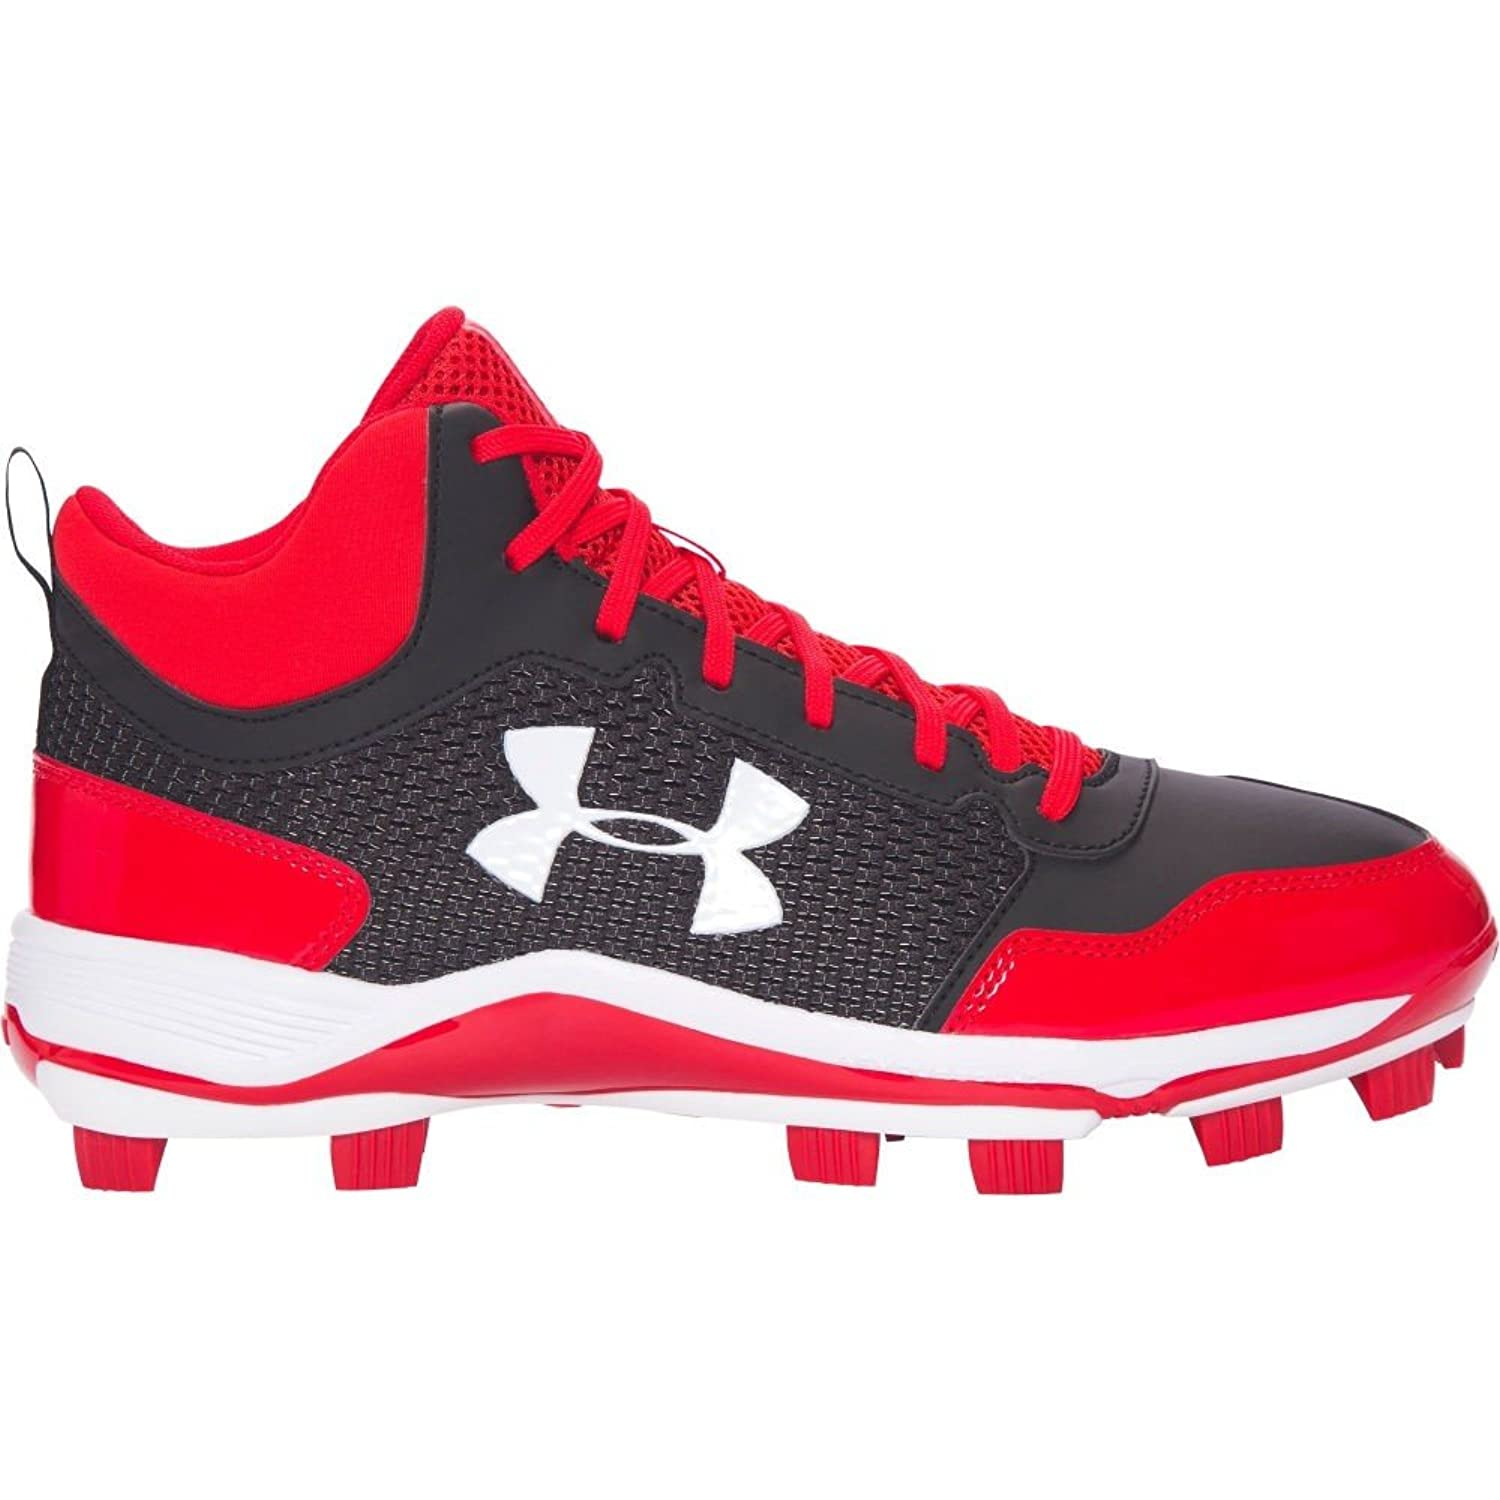 (アンダーアーマー) Under Armour メンズ 野球 シューズ靴 Under Armour Heater Mid TPU Baseball Cleats [並行輸入品] B077YD7HHF 10.0-Medium